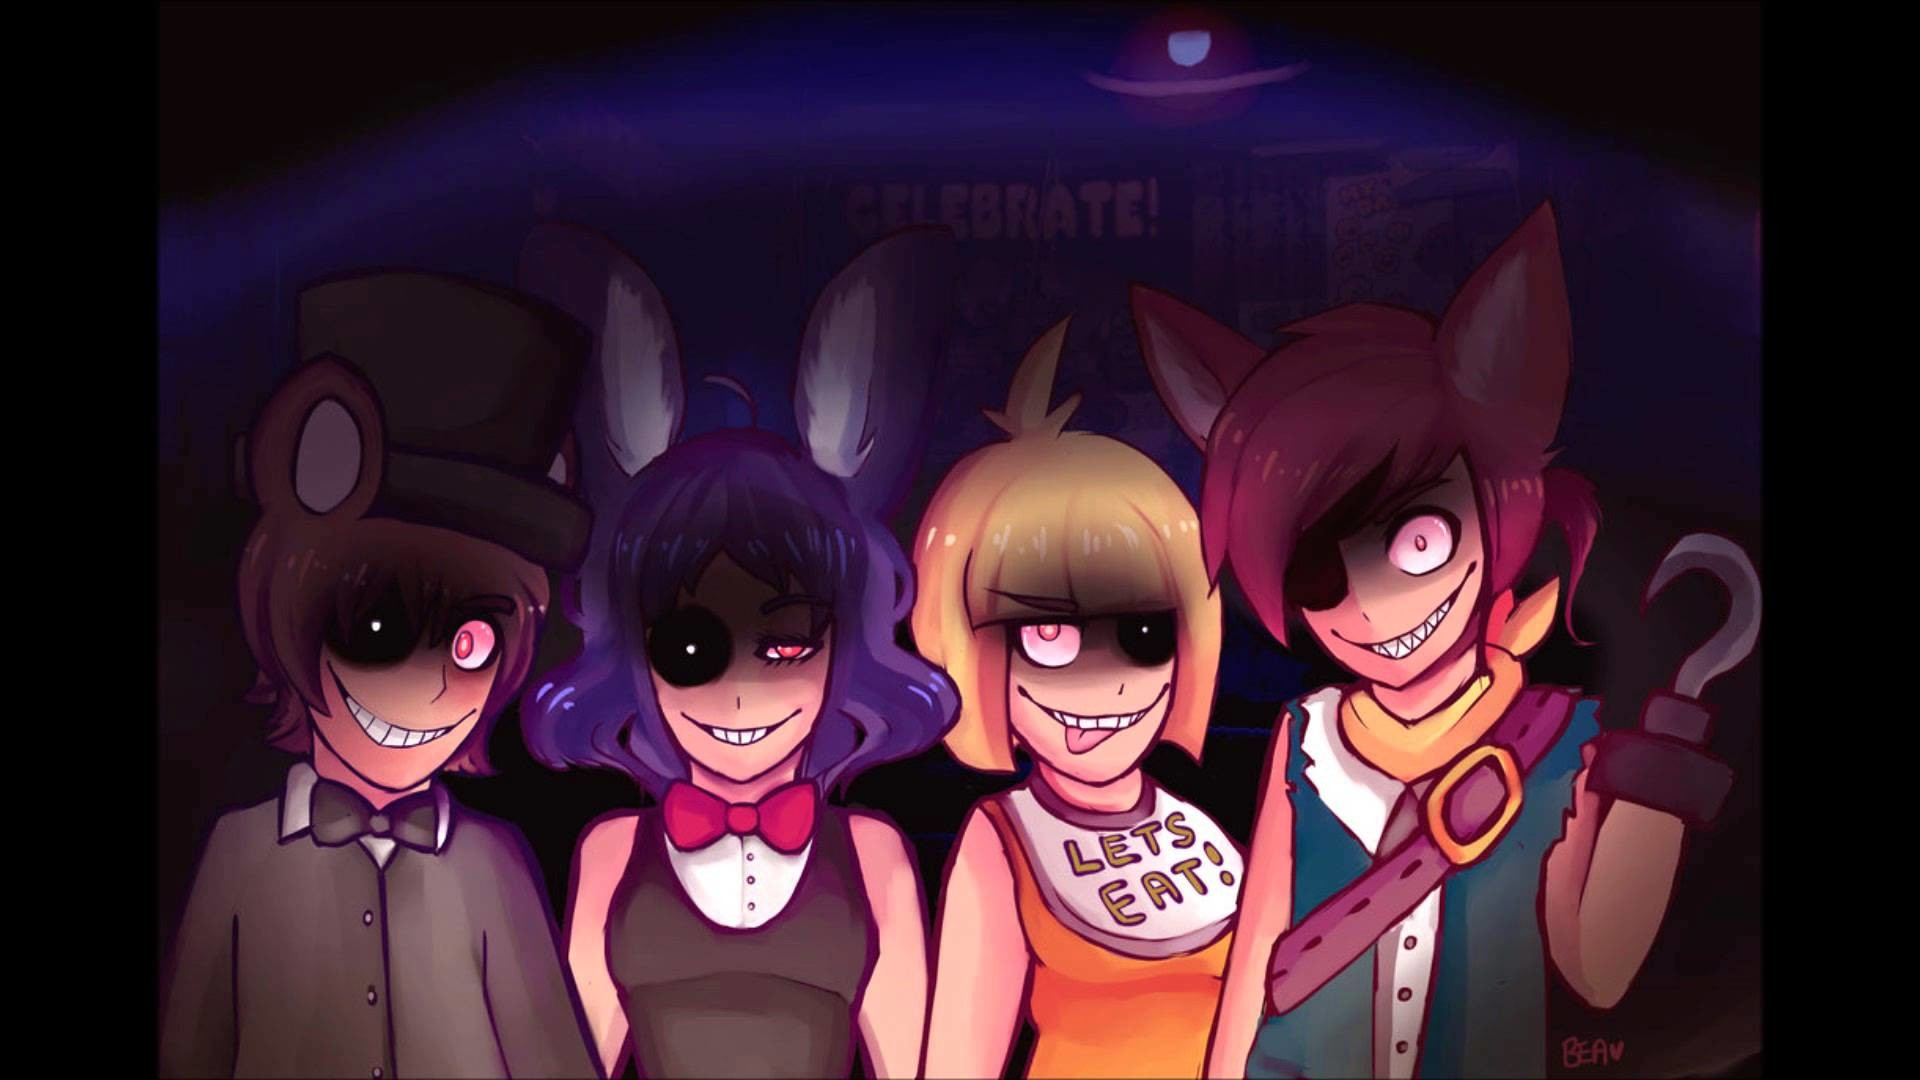 1920x1080 Fnaf 3 Cool Wallpapers How to Make Five Nights at Freddy S 3 Not Scary the